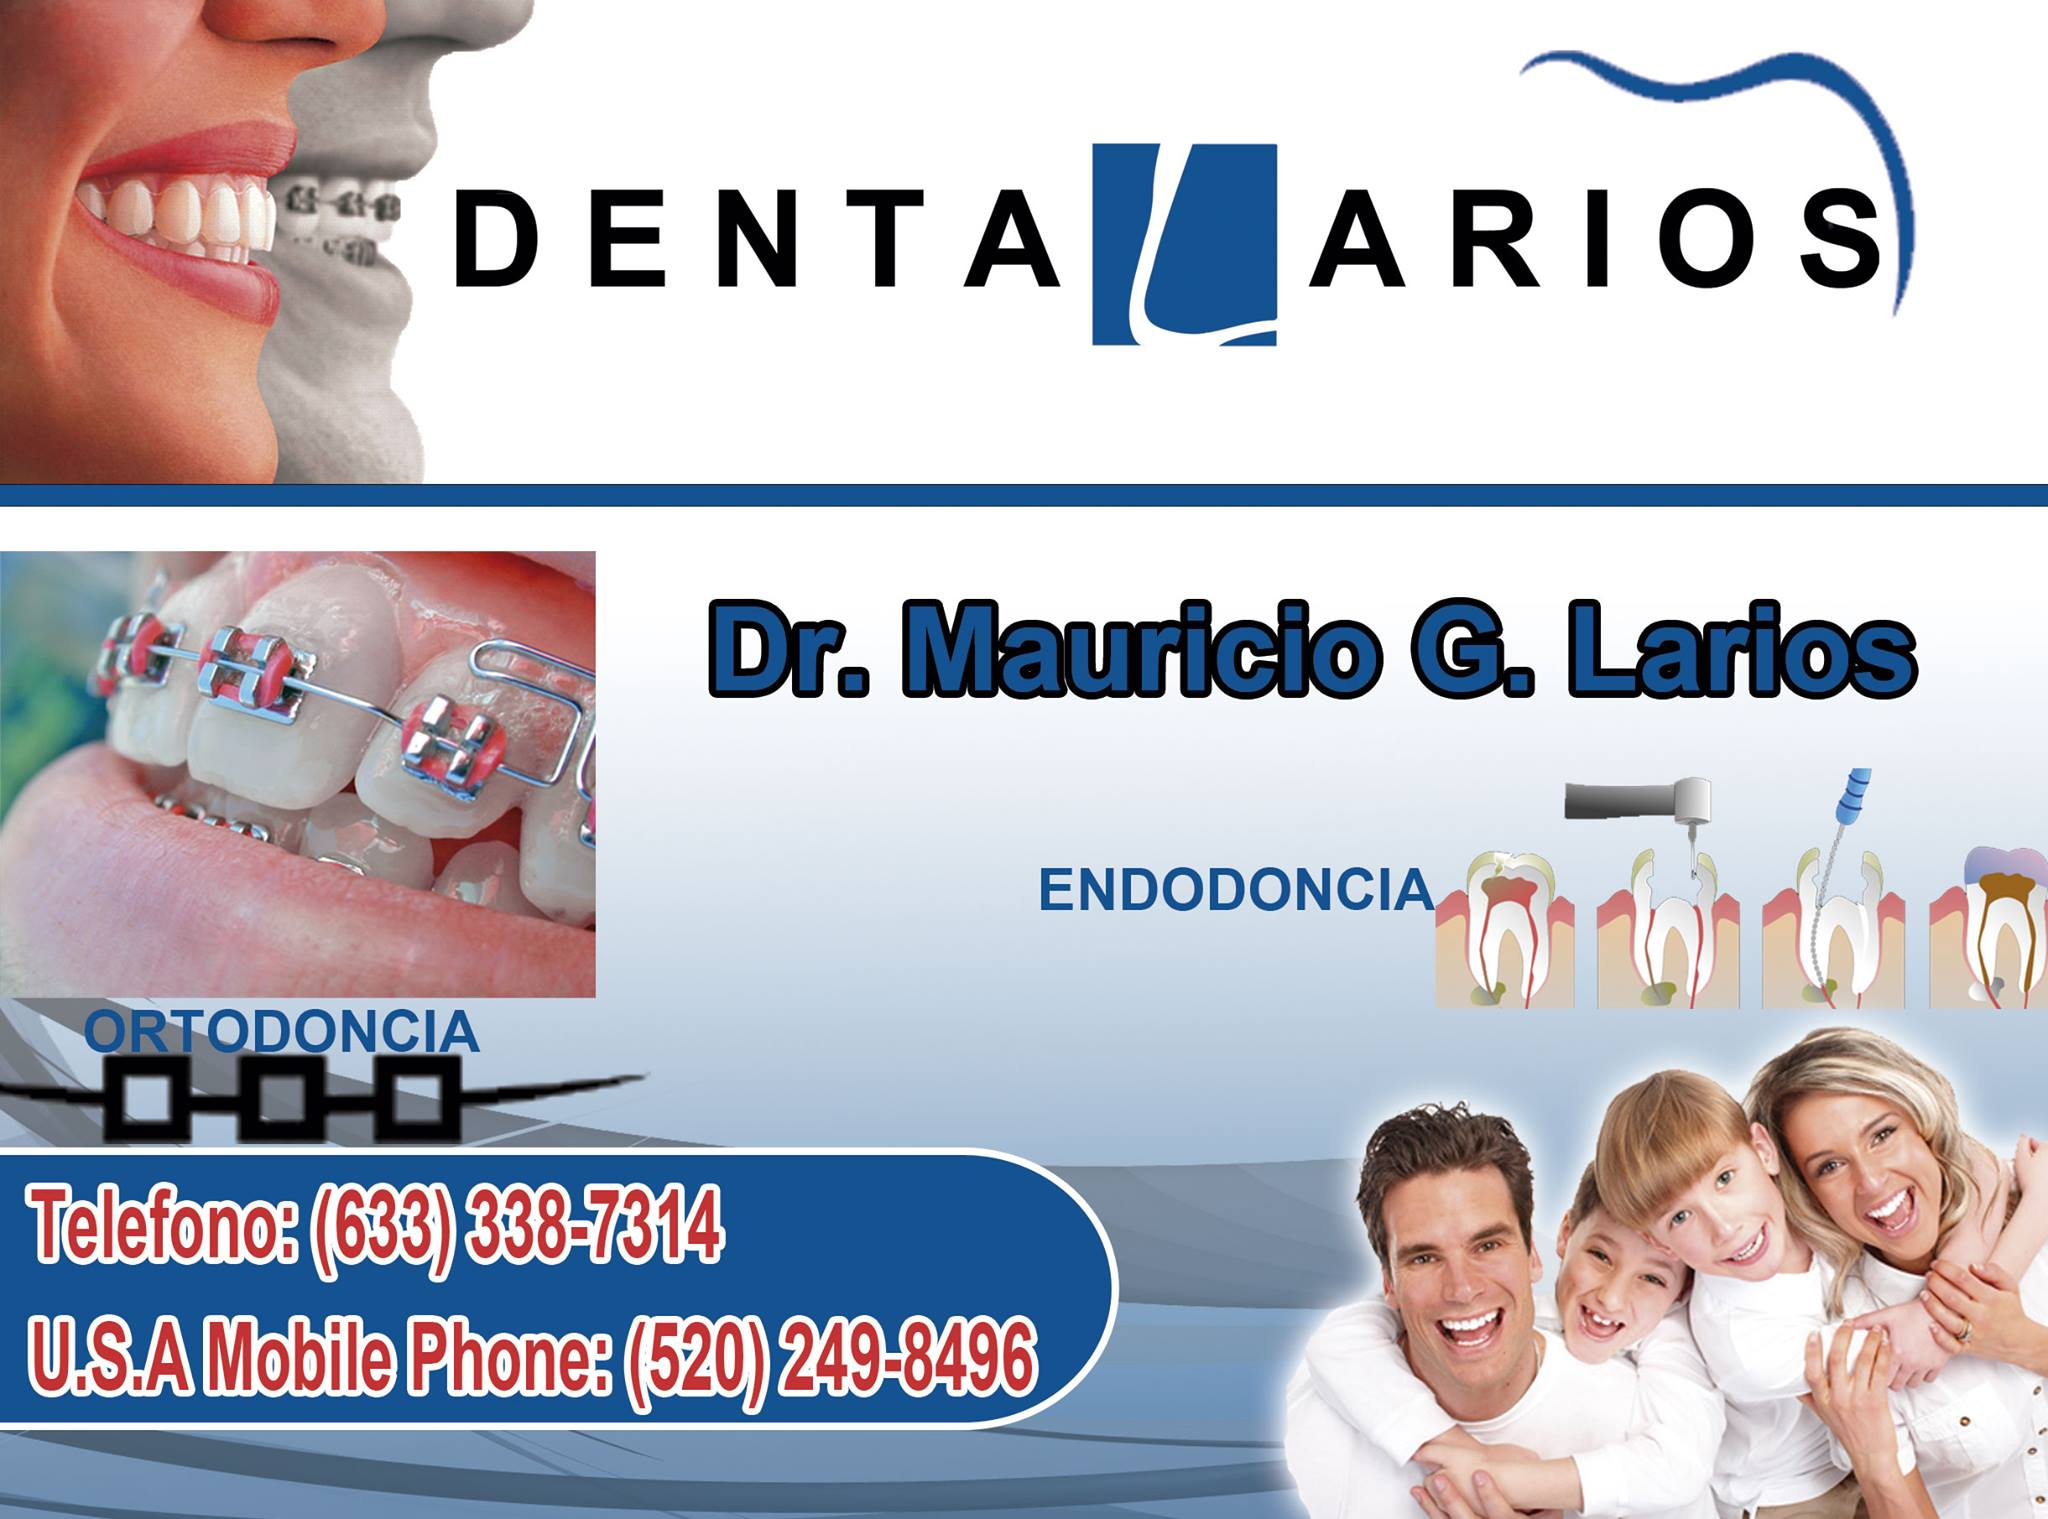 Dental Larios